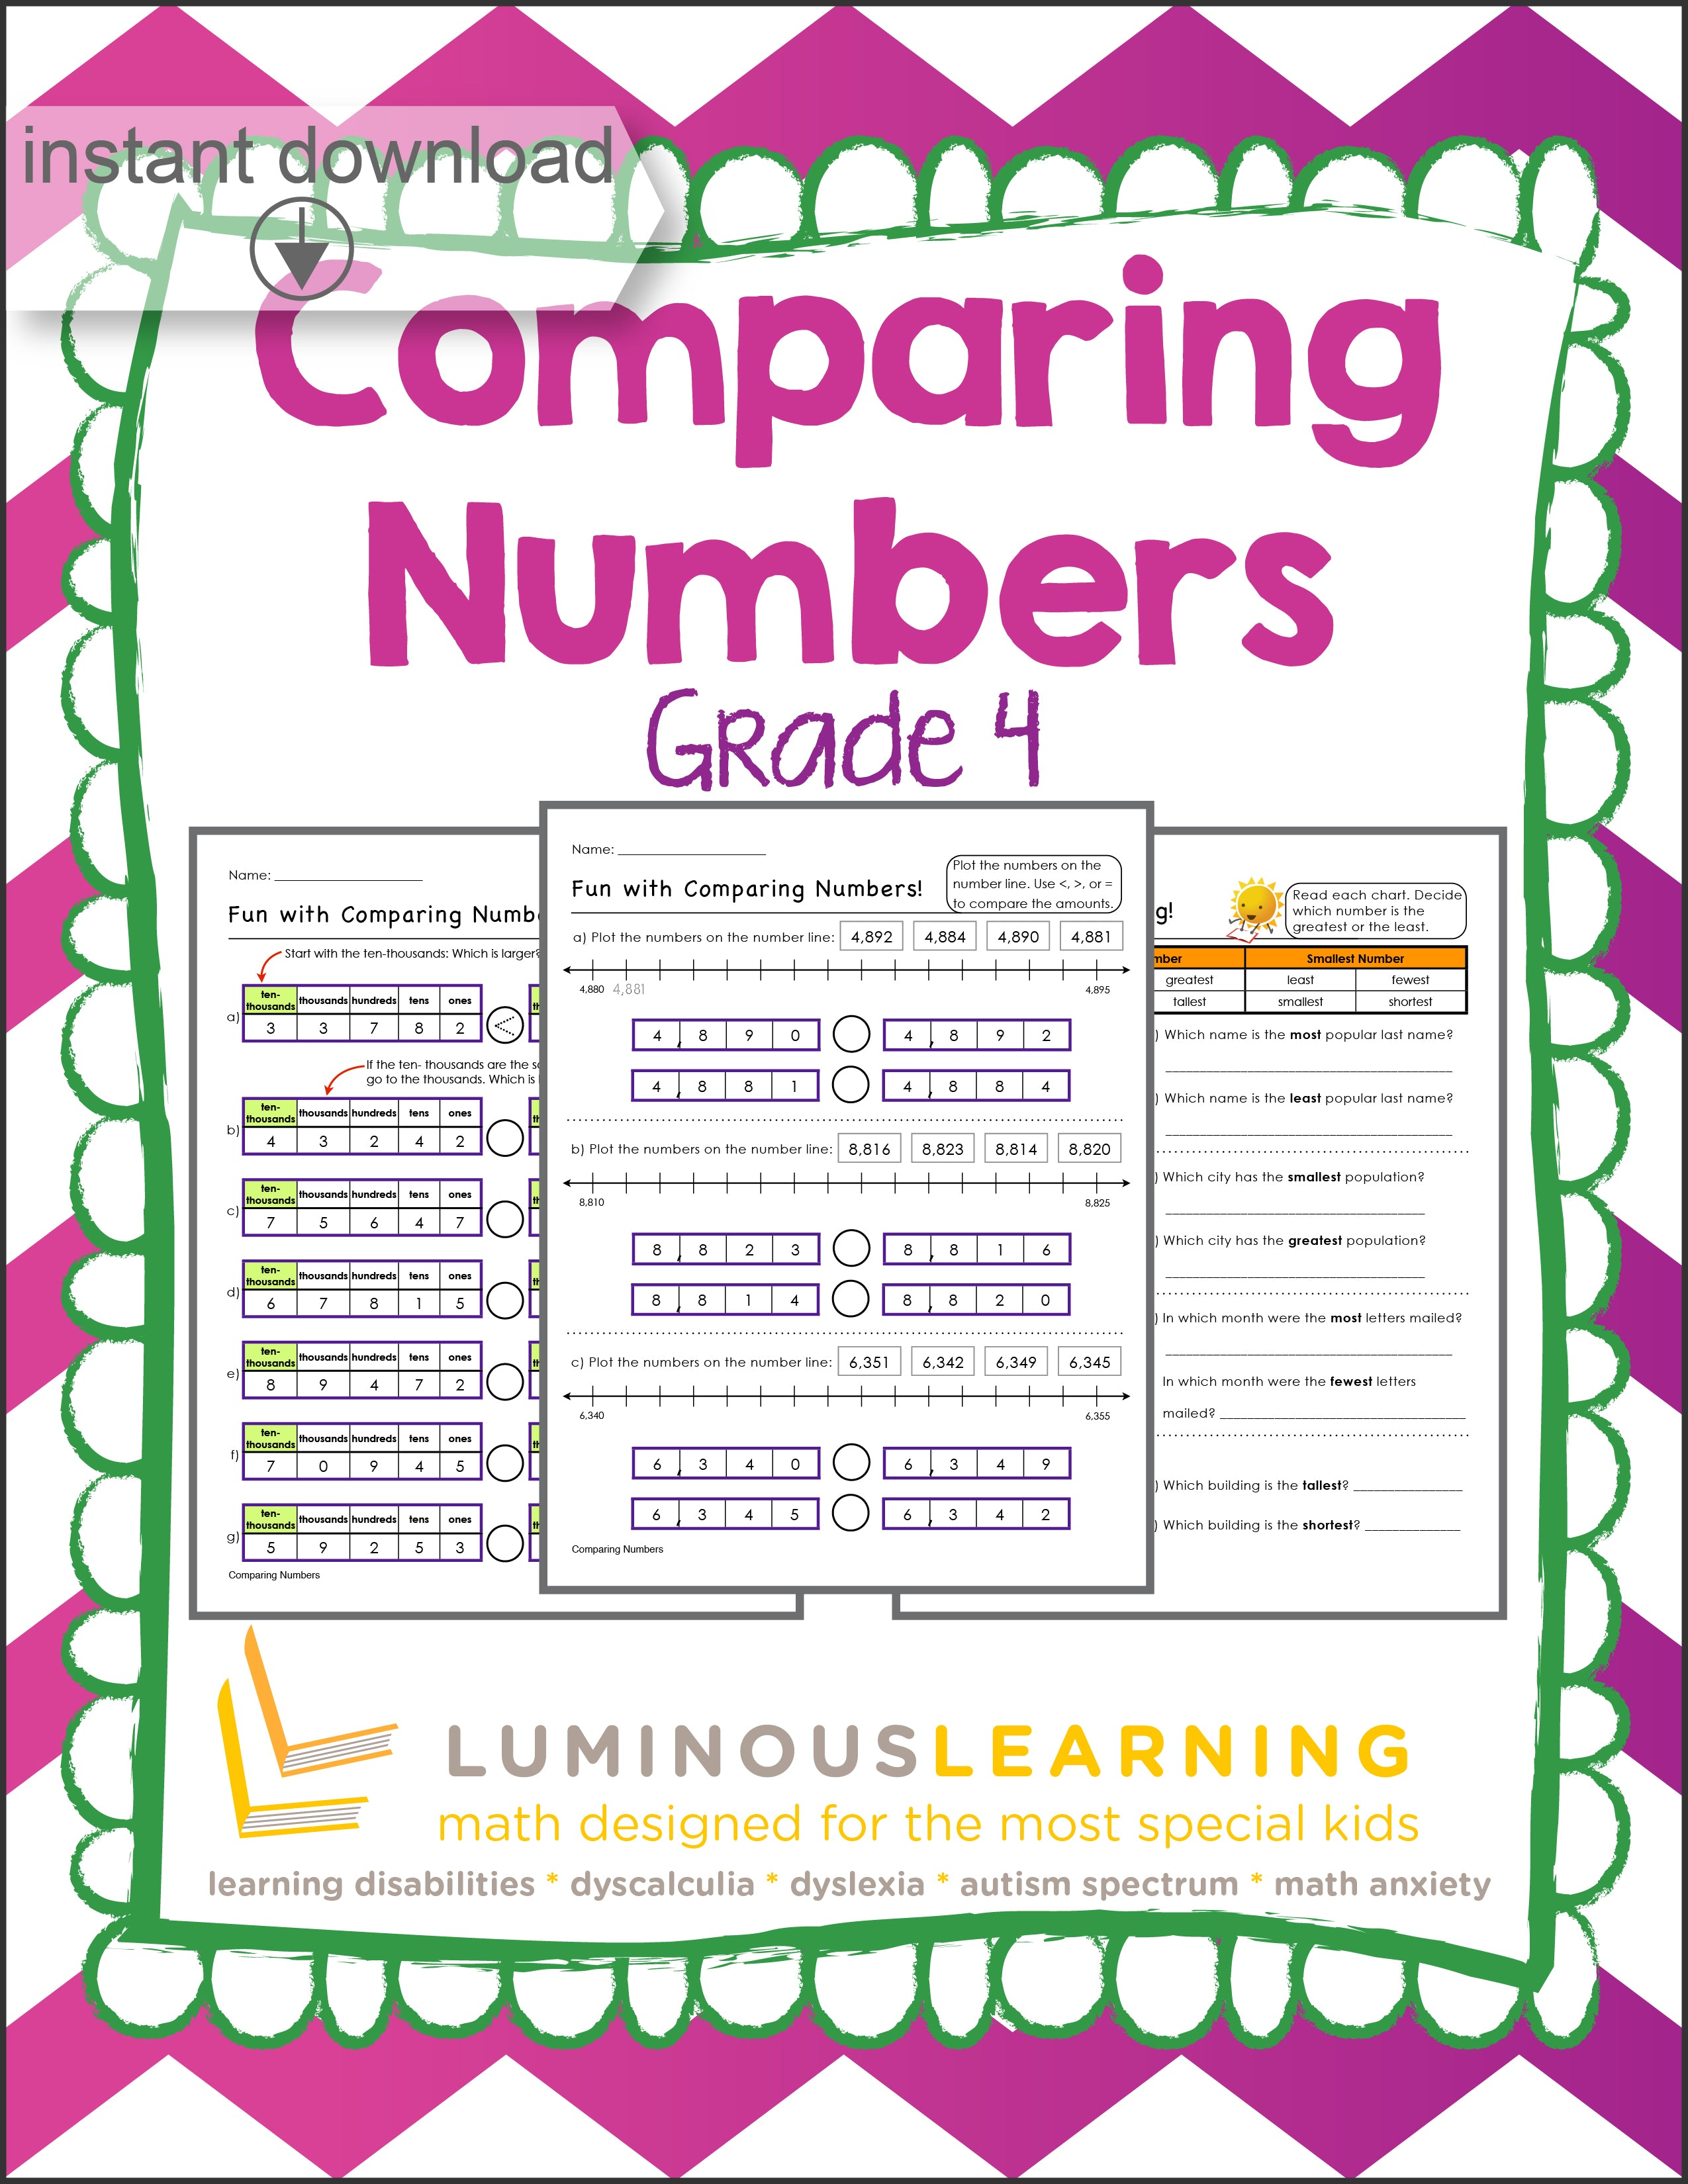 Grades 4-5 math worksheets, games, & activities for special education